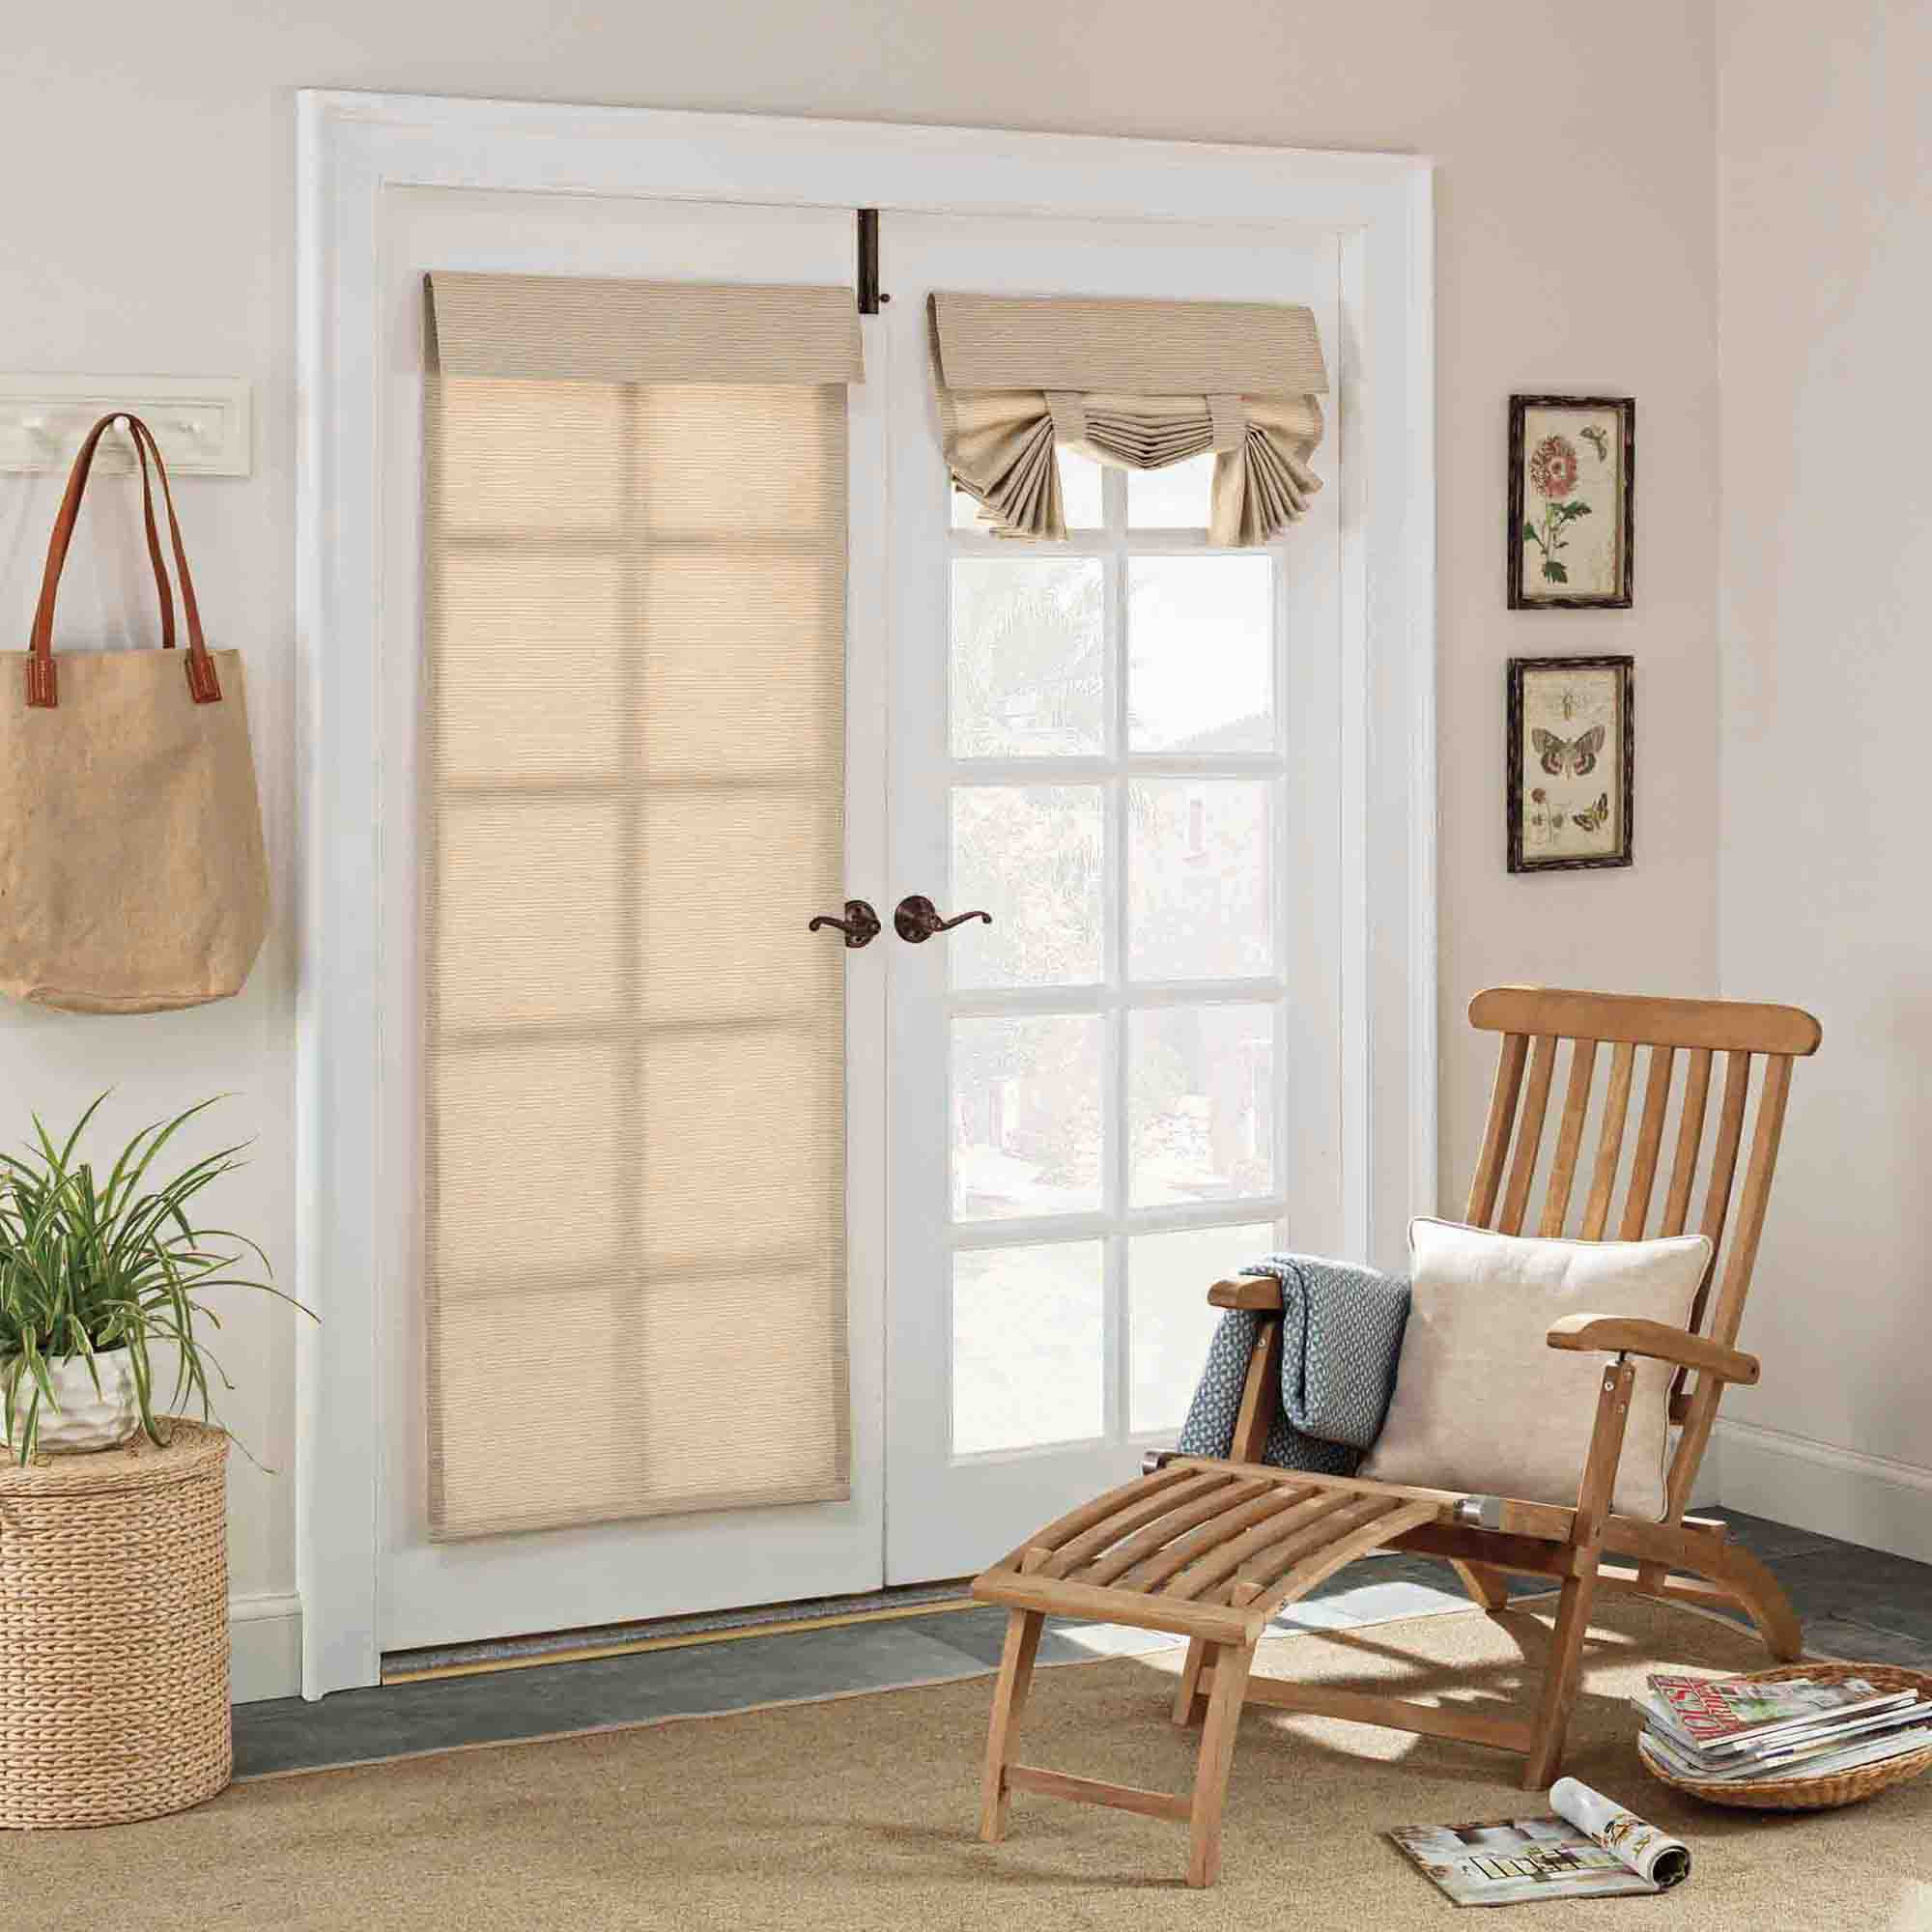 Parasol Key Largo 68 Inch French Door Panel French Door Curtains